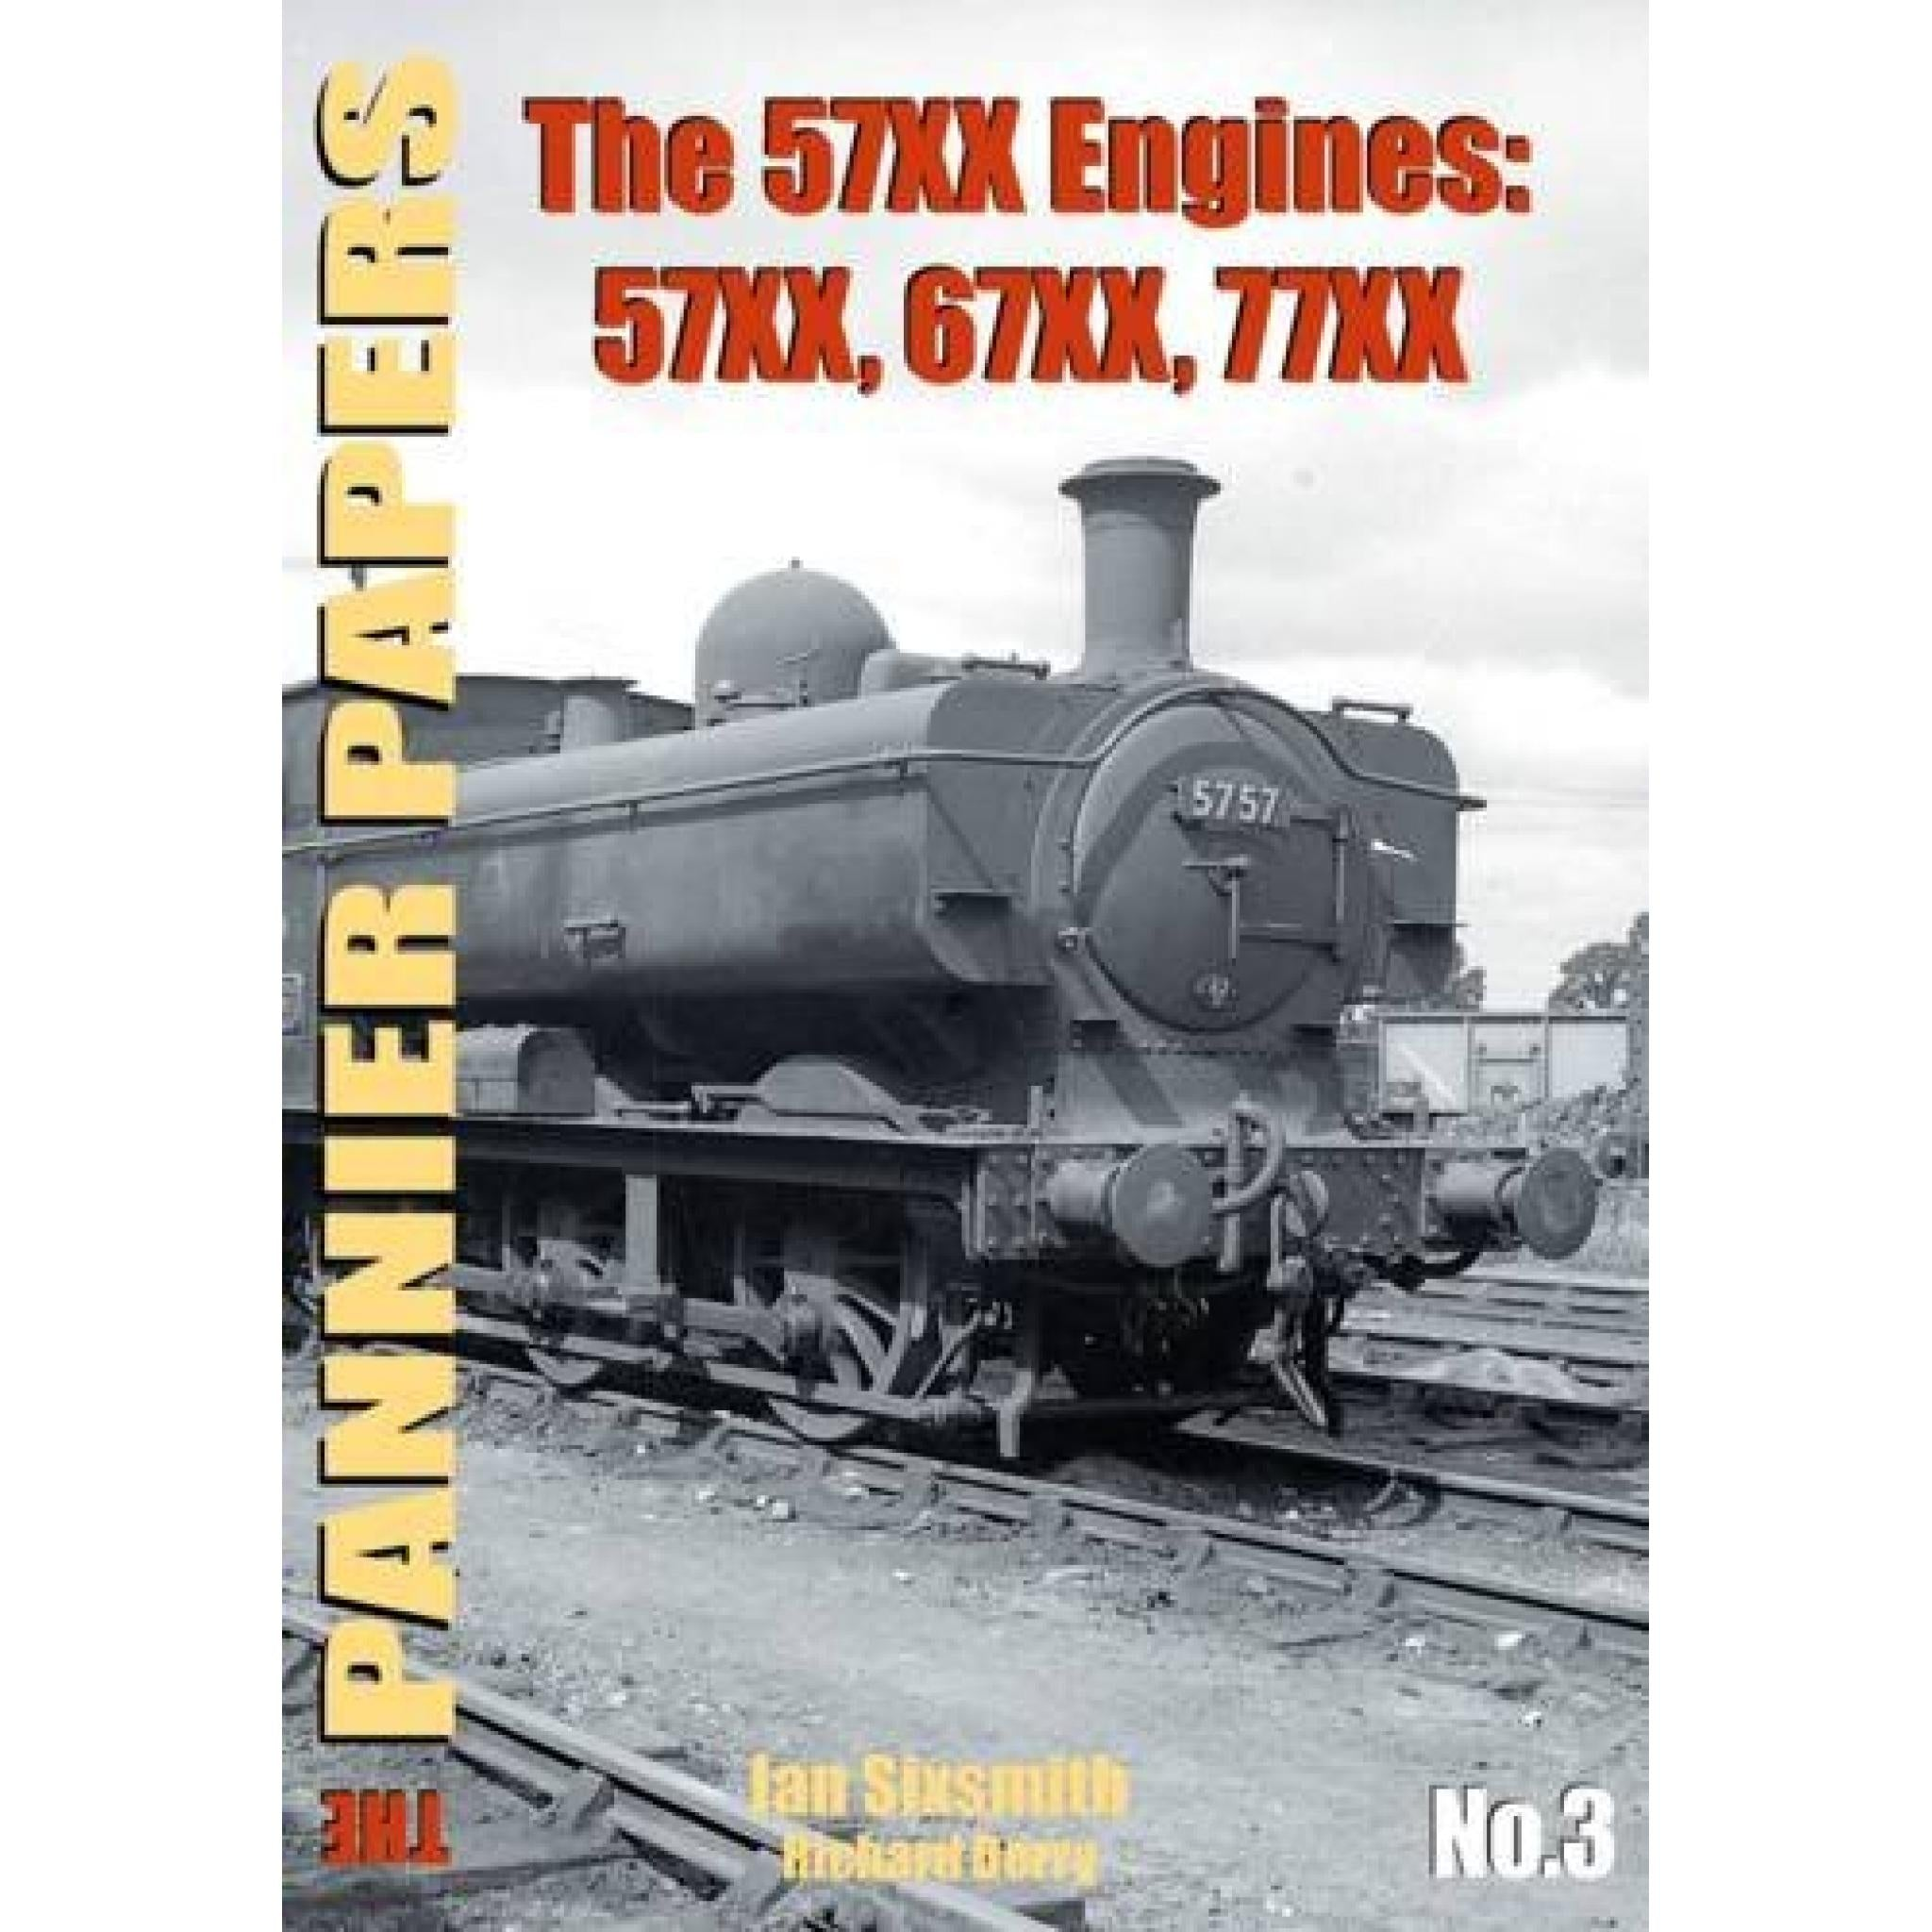 The PANNIER PAPERS No.3 The 57XX Engines: 57XX, 67XX, 77XX